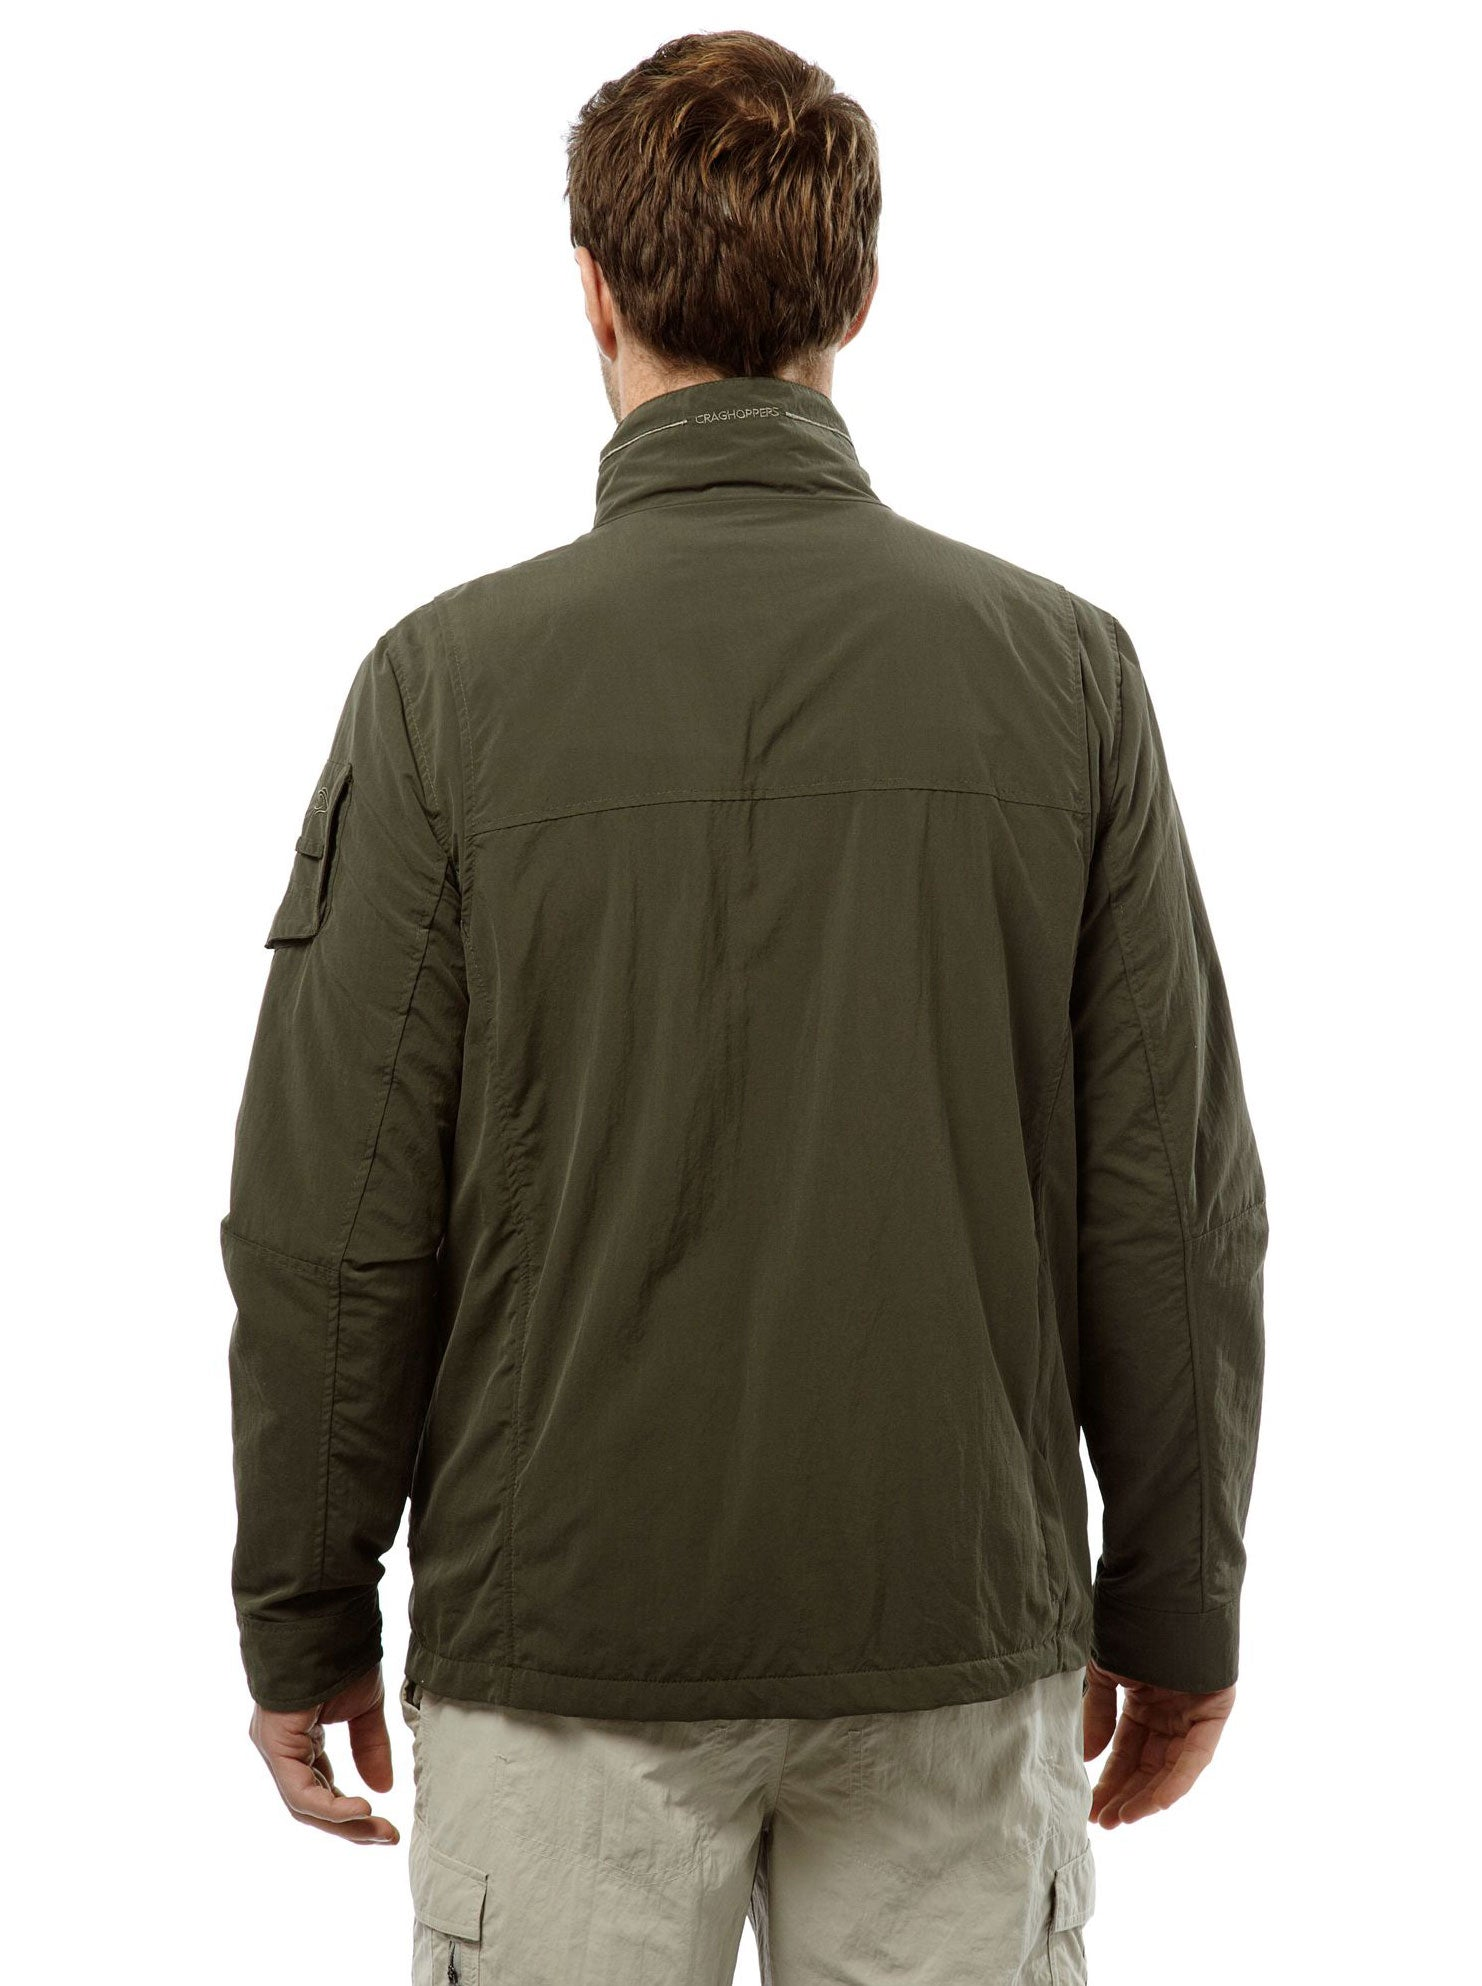 Back View Adventure I Multi-pocket Travel Jacket by Craghoppers